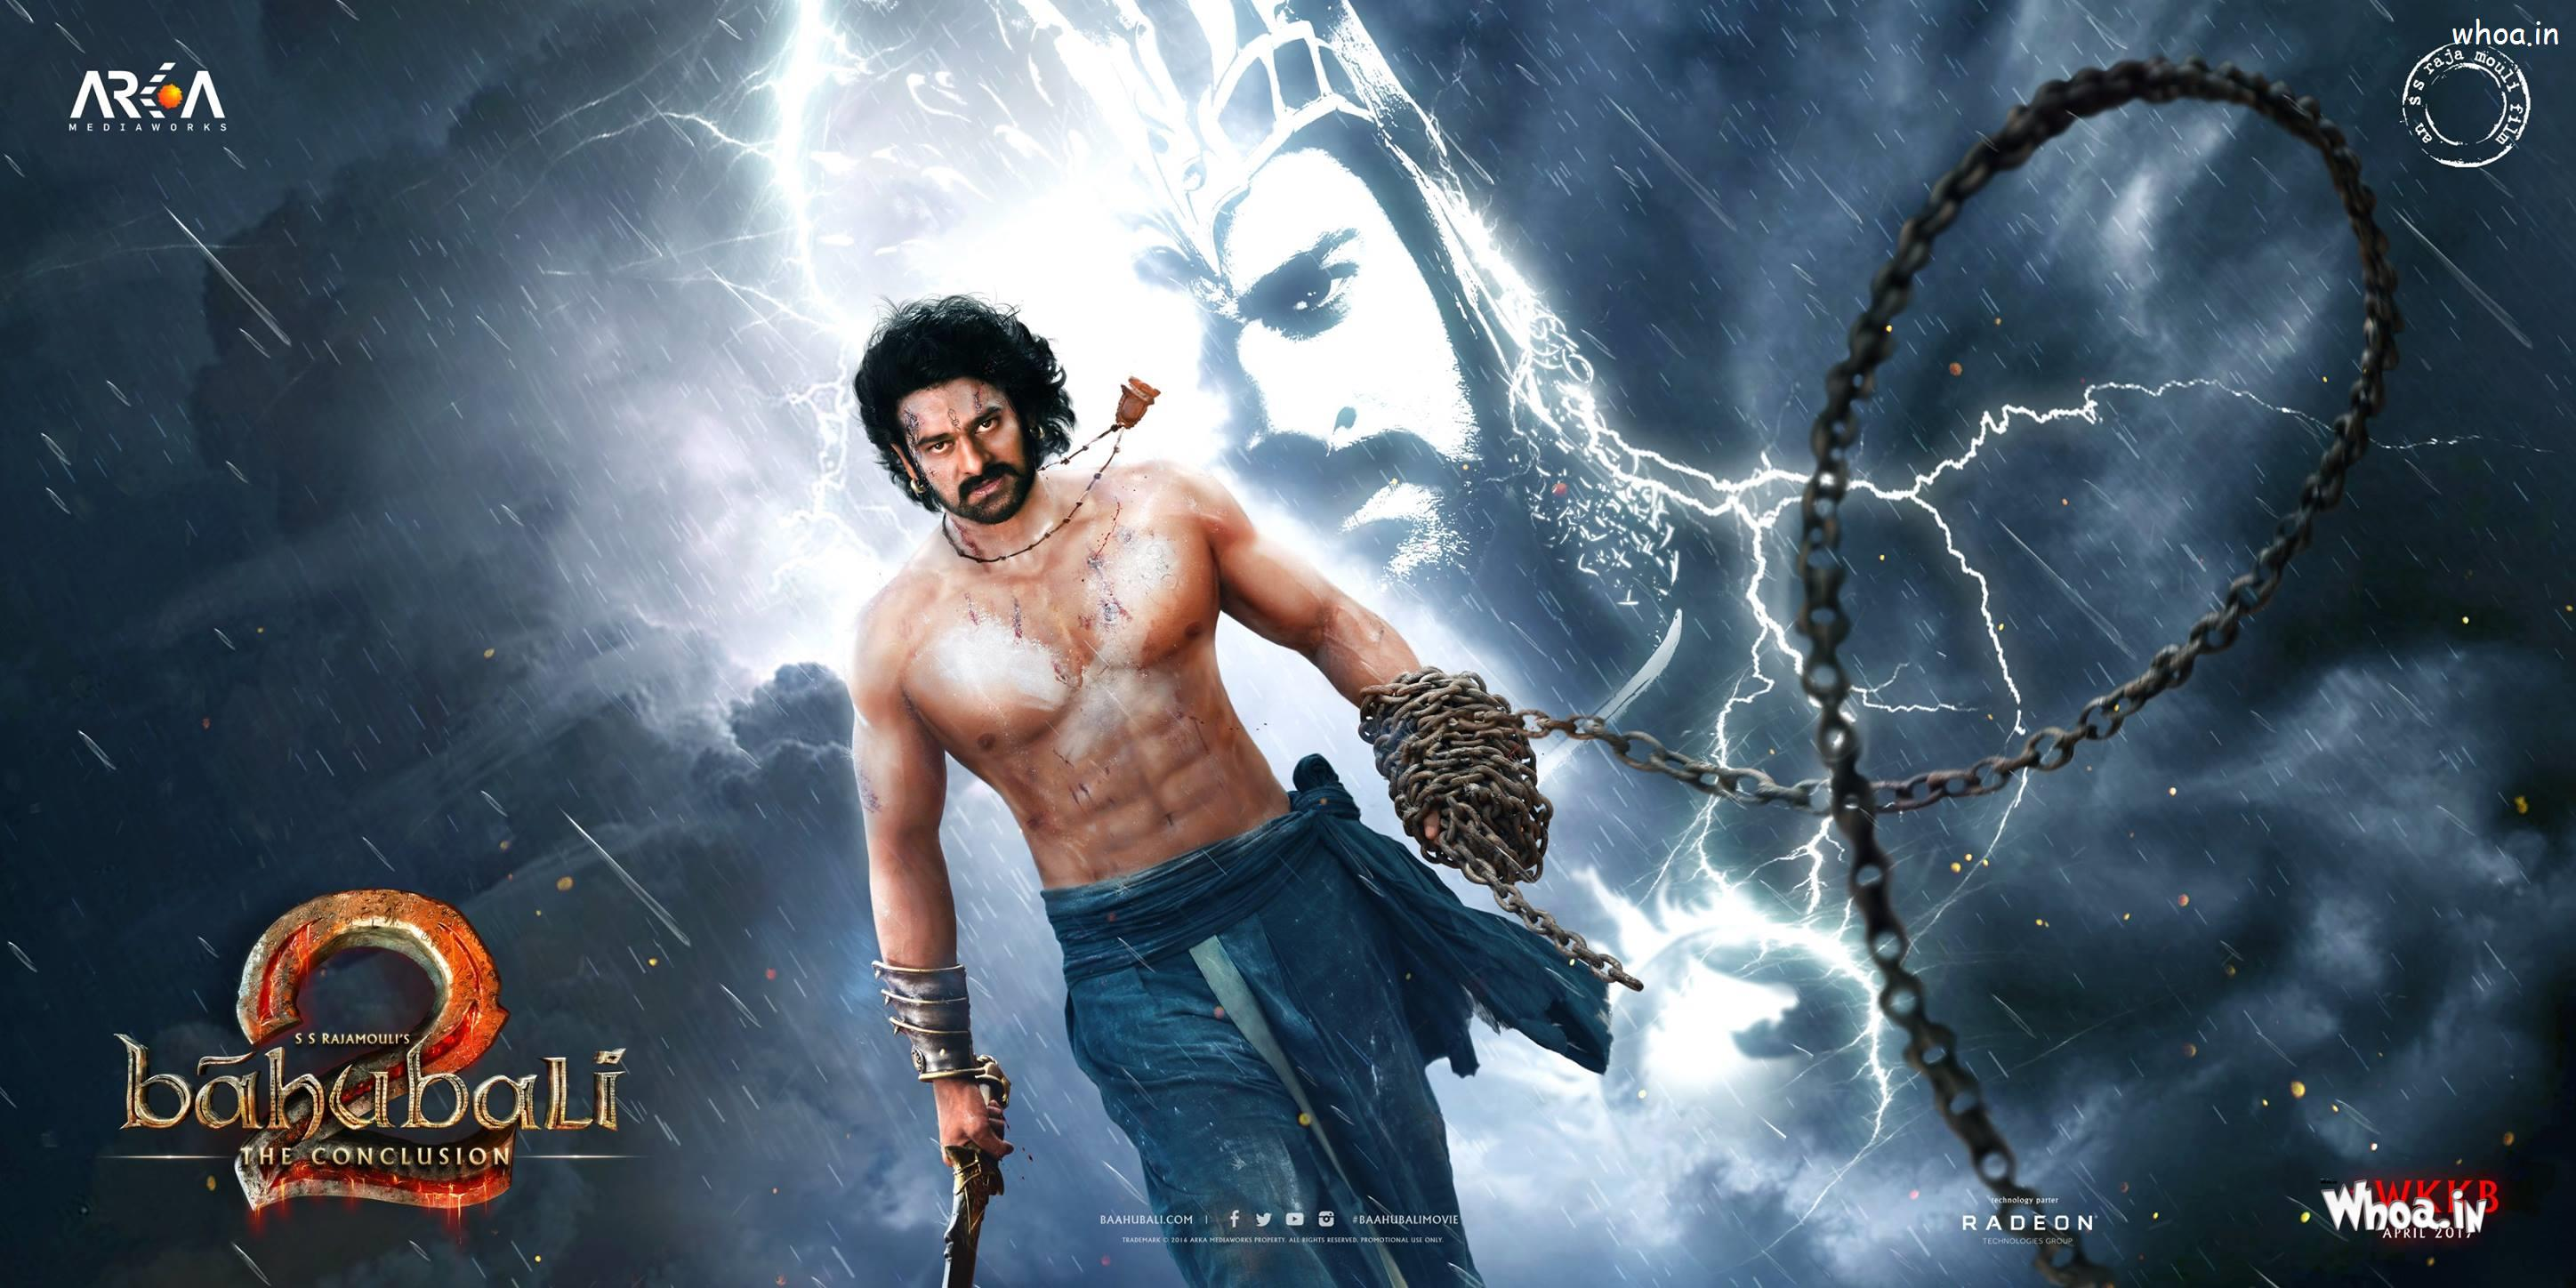 Bahubali 2 Fight Poster 2017 Prabhas Hd Movies Wallpapers